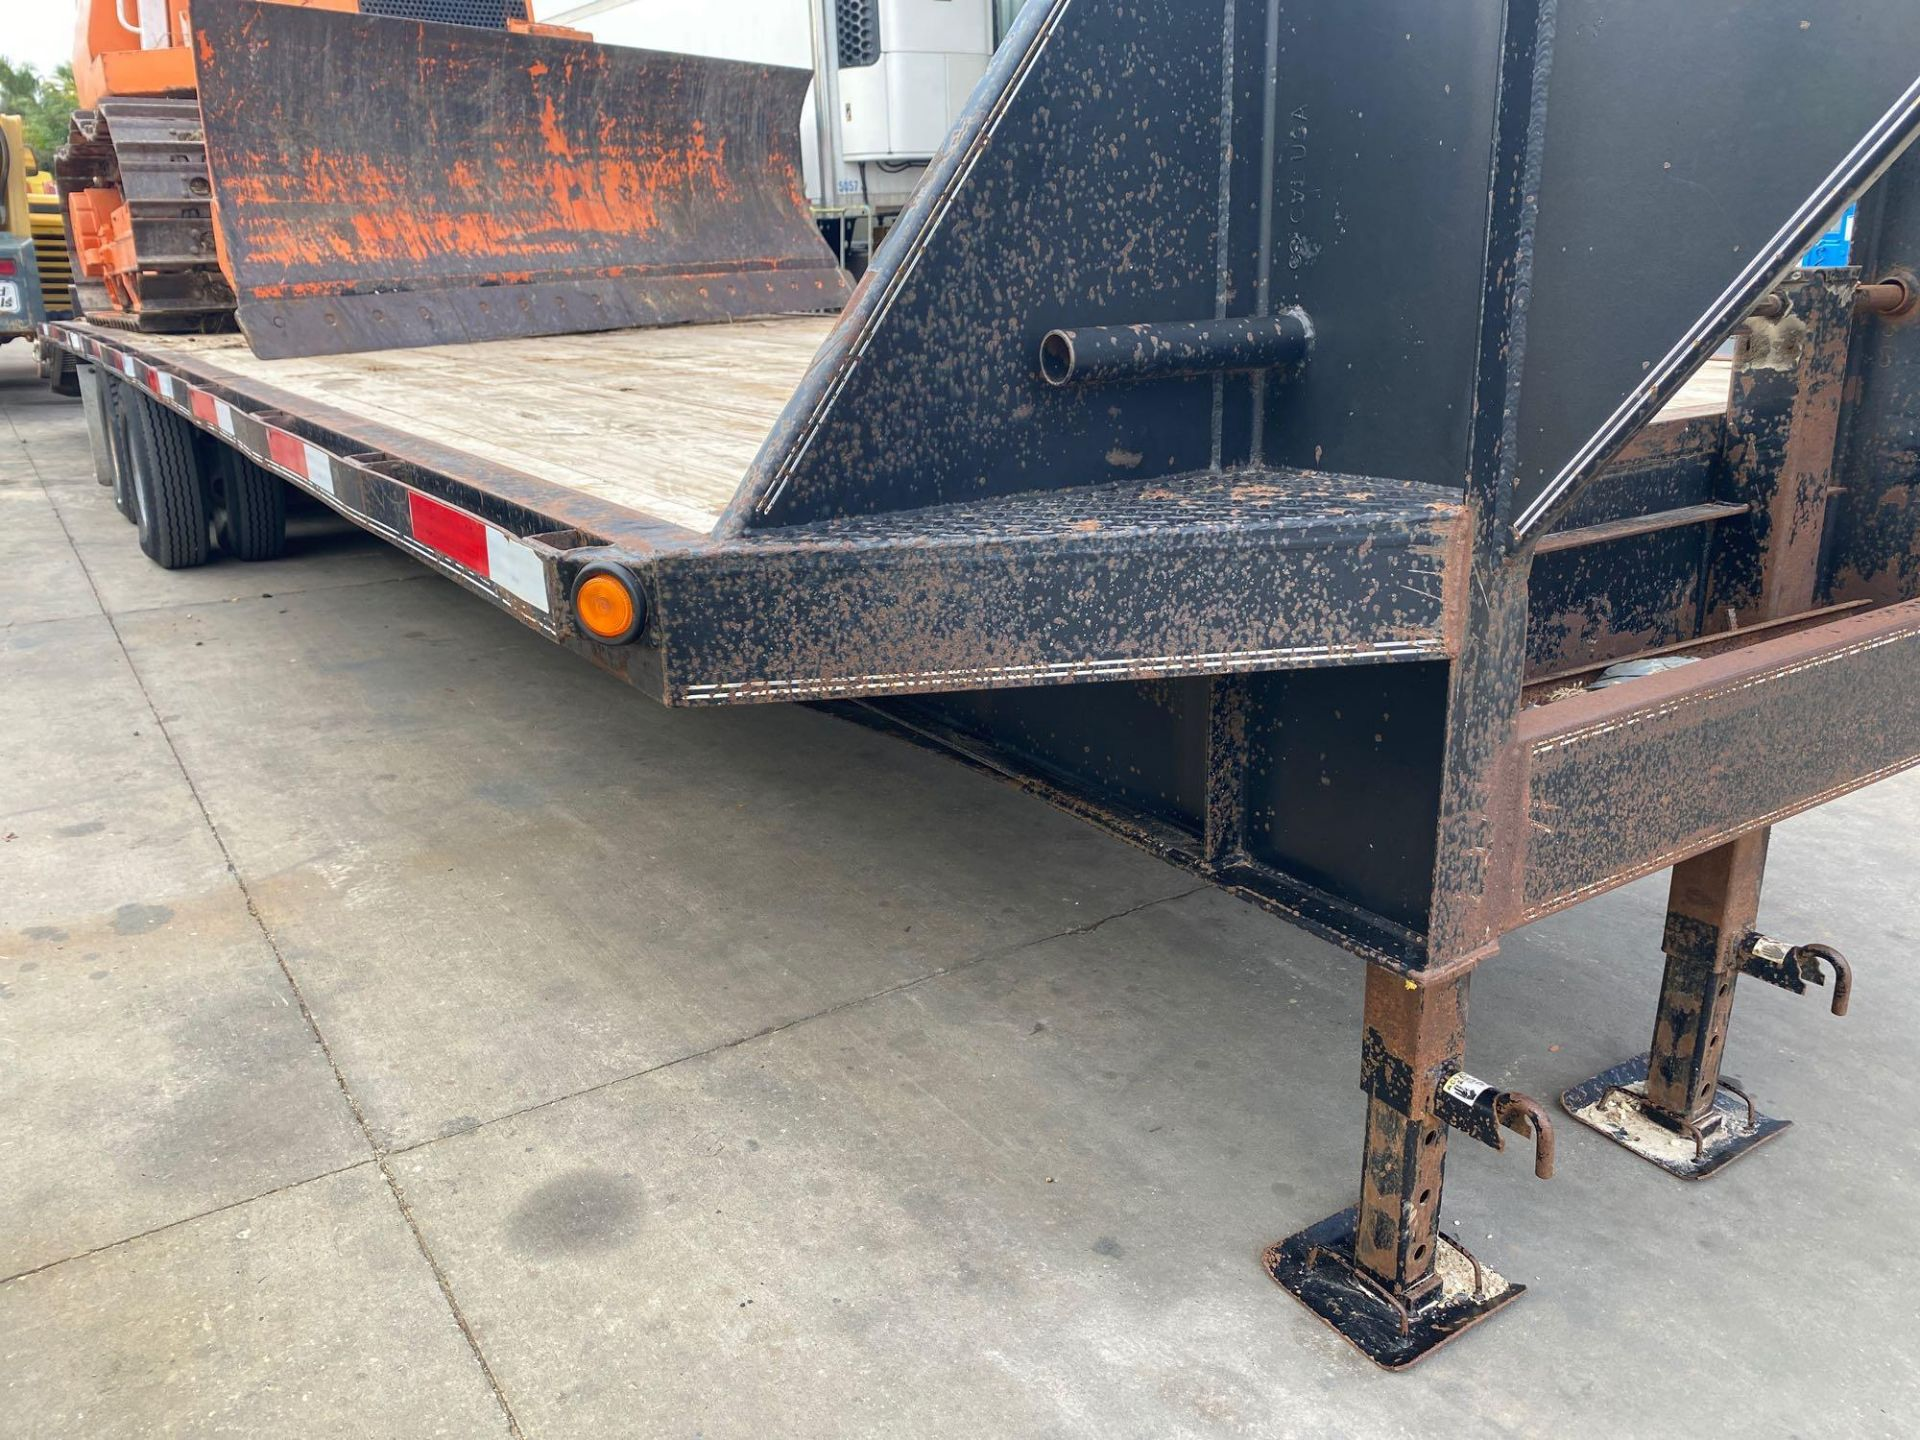 Lot 35 - 2011 32' TEXAS BRAGG TRAILER, GOOSE NECK, NEW DECK, FOLD DOWN RAMPS,